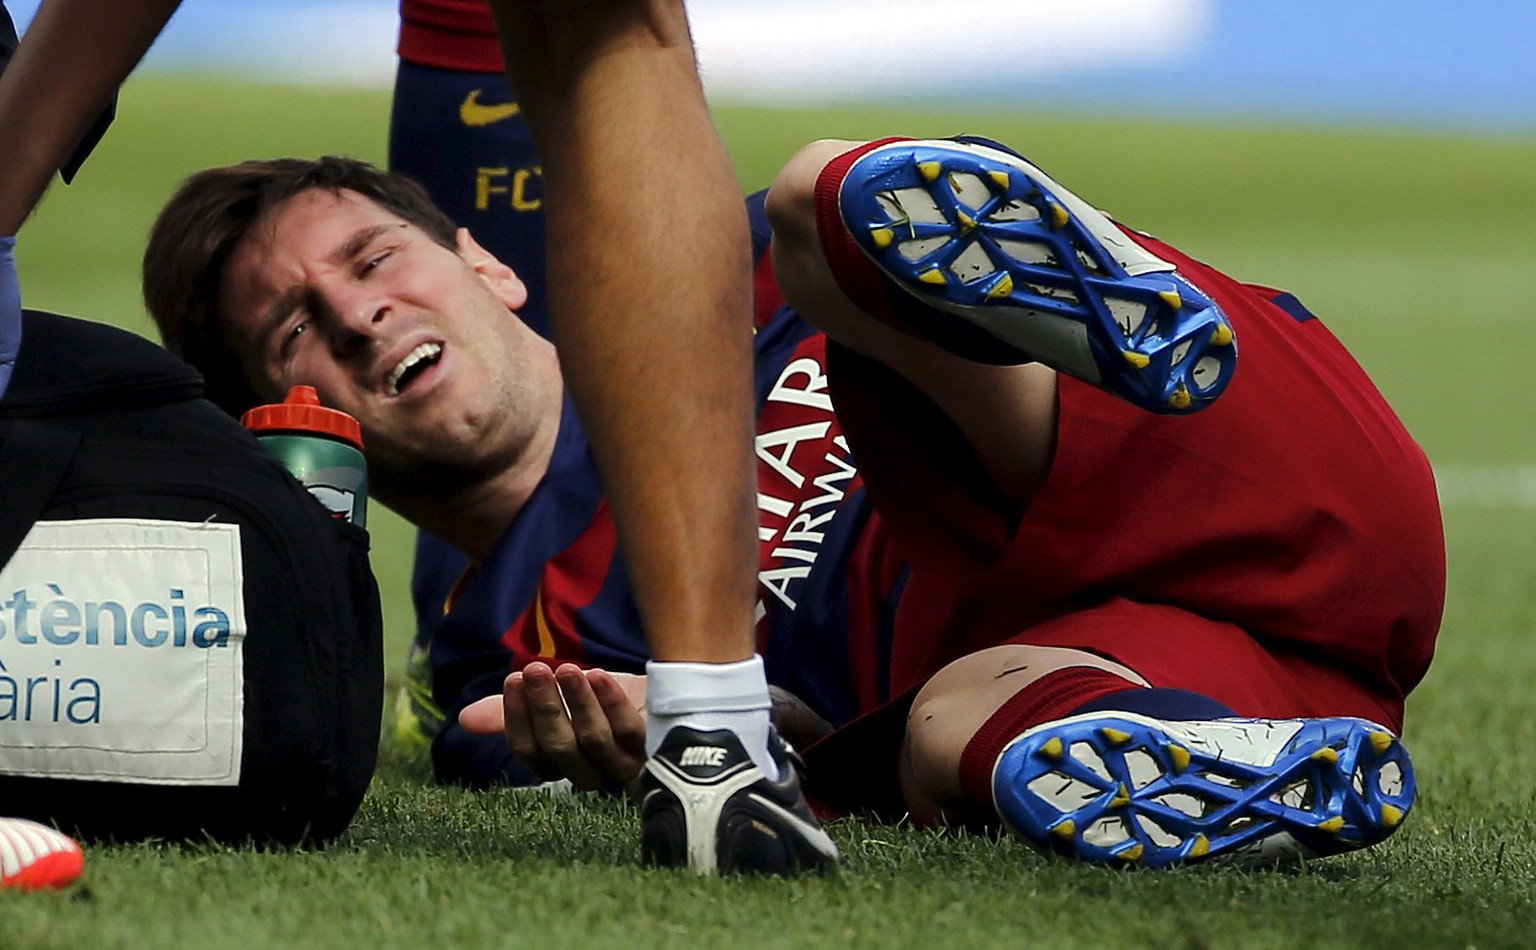 Barcelona's Lionel Messi grimaces as he lies on the pitch after injuring his left knee during their Spanish first division soccer match against Las Palmas at Camp Nou stadium in Barcelona, Spain, September 26, 2015. REUTERS/Sergio Perez